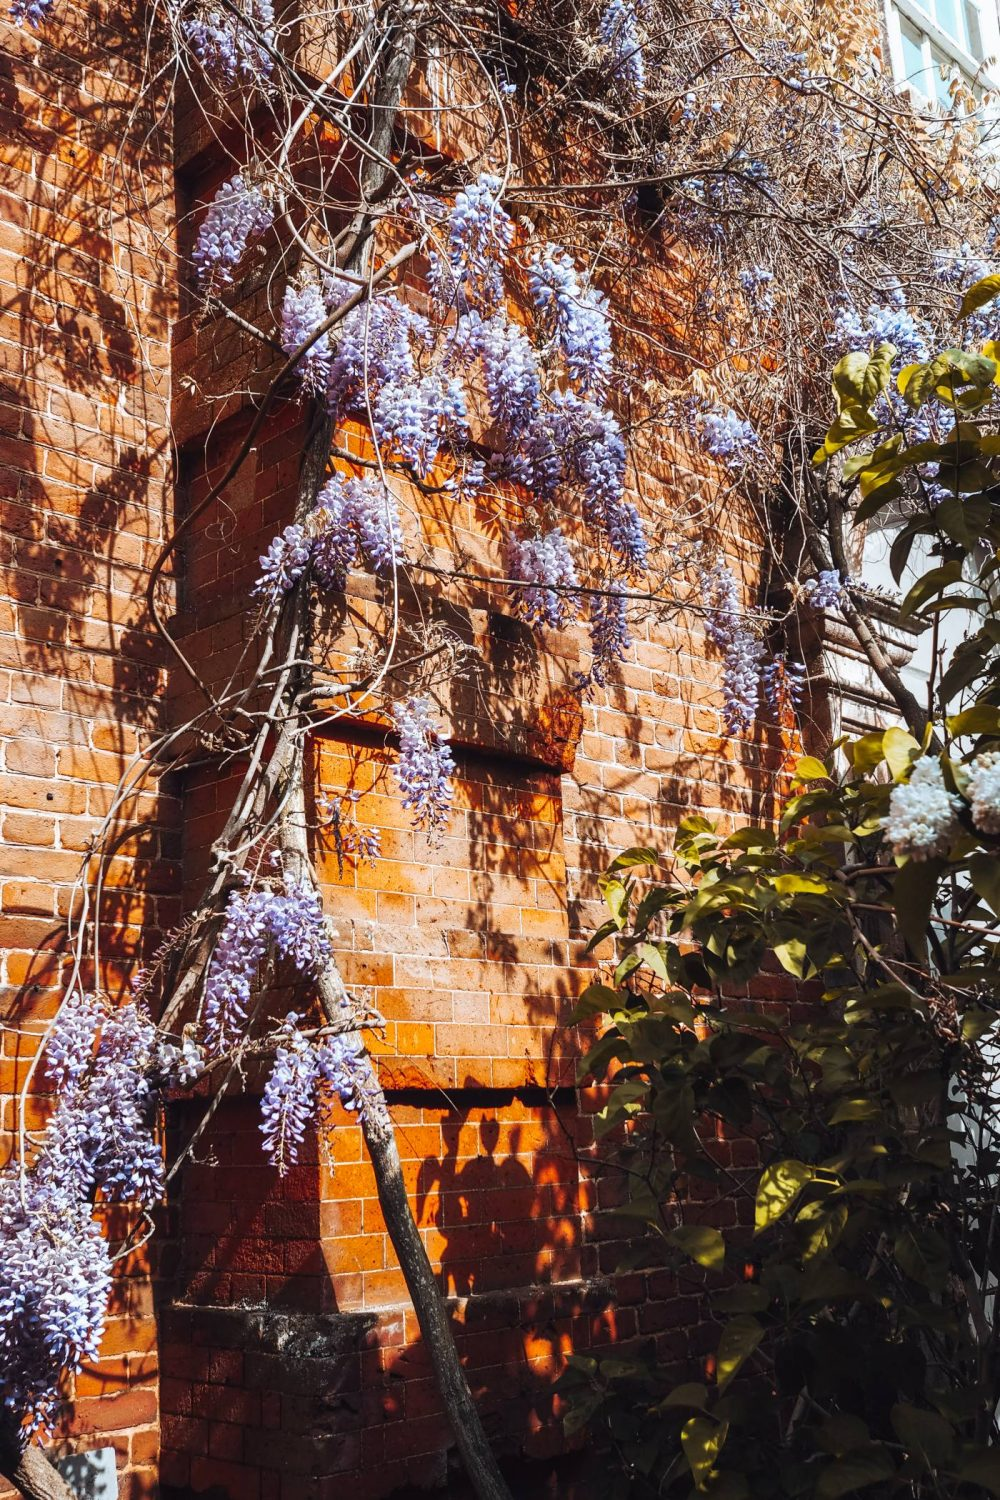 Purple wisteria in front of a redbrick wall